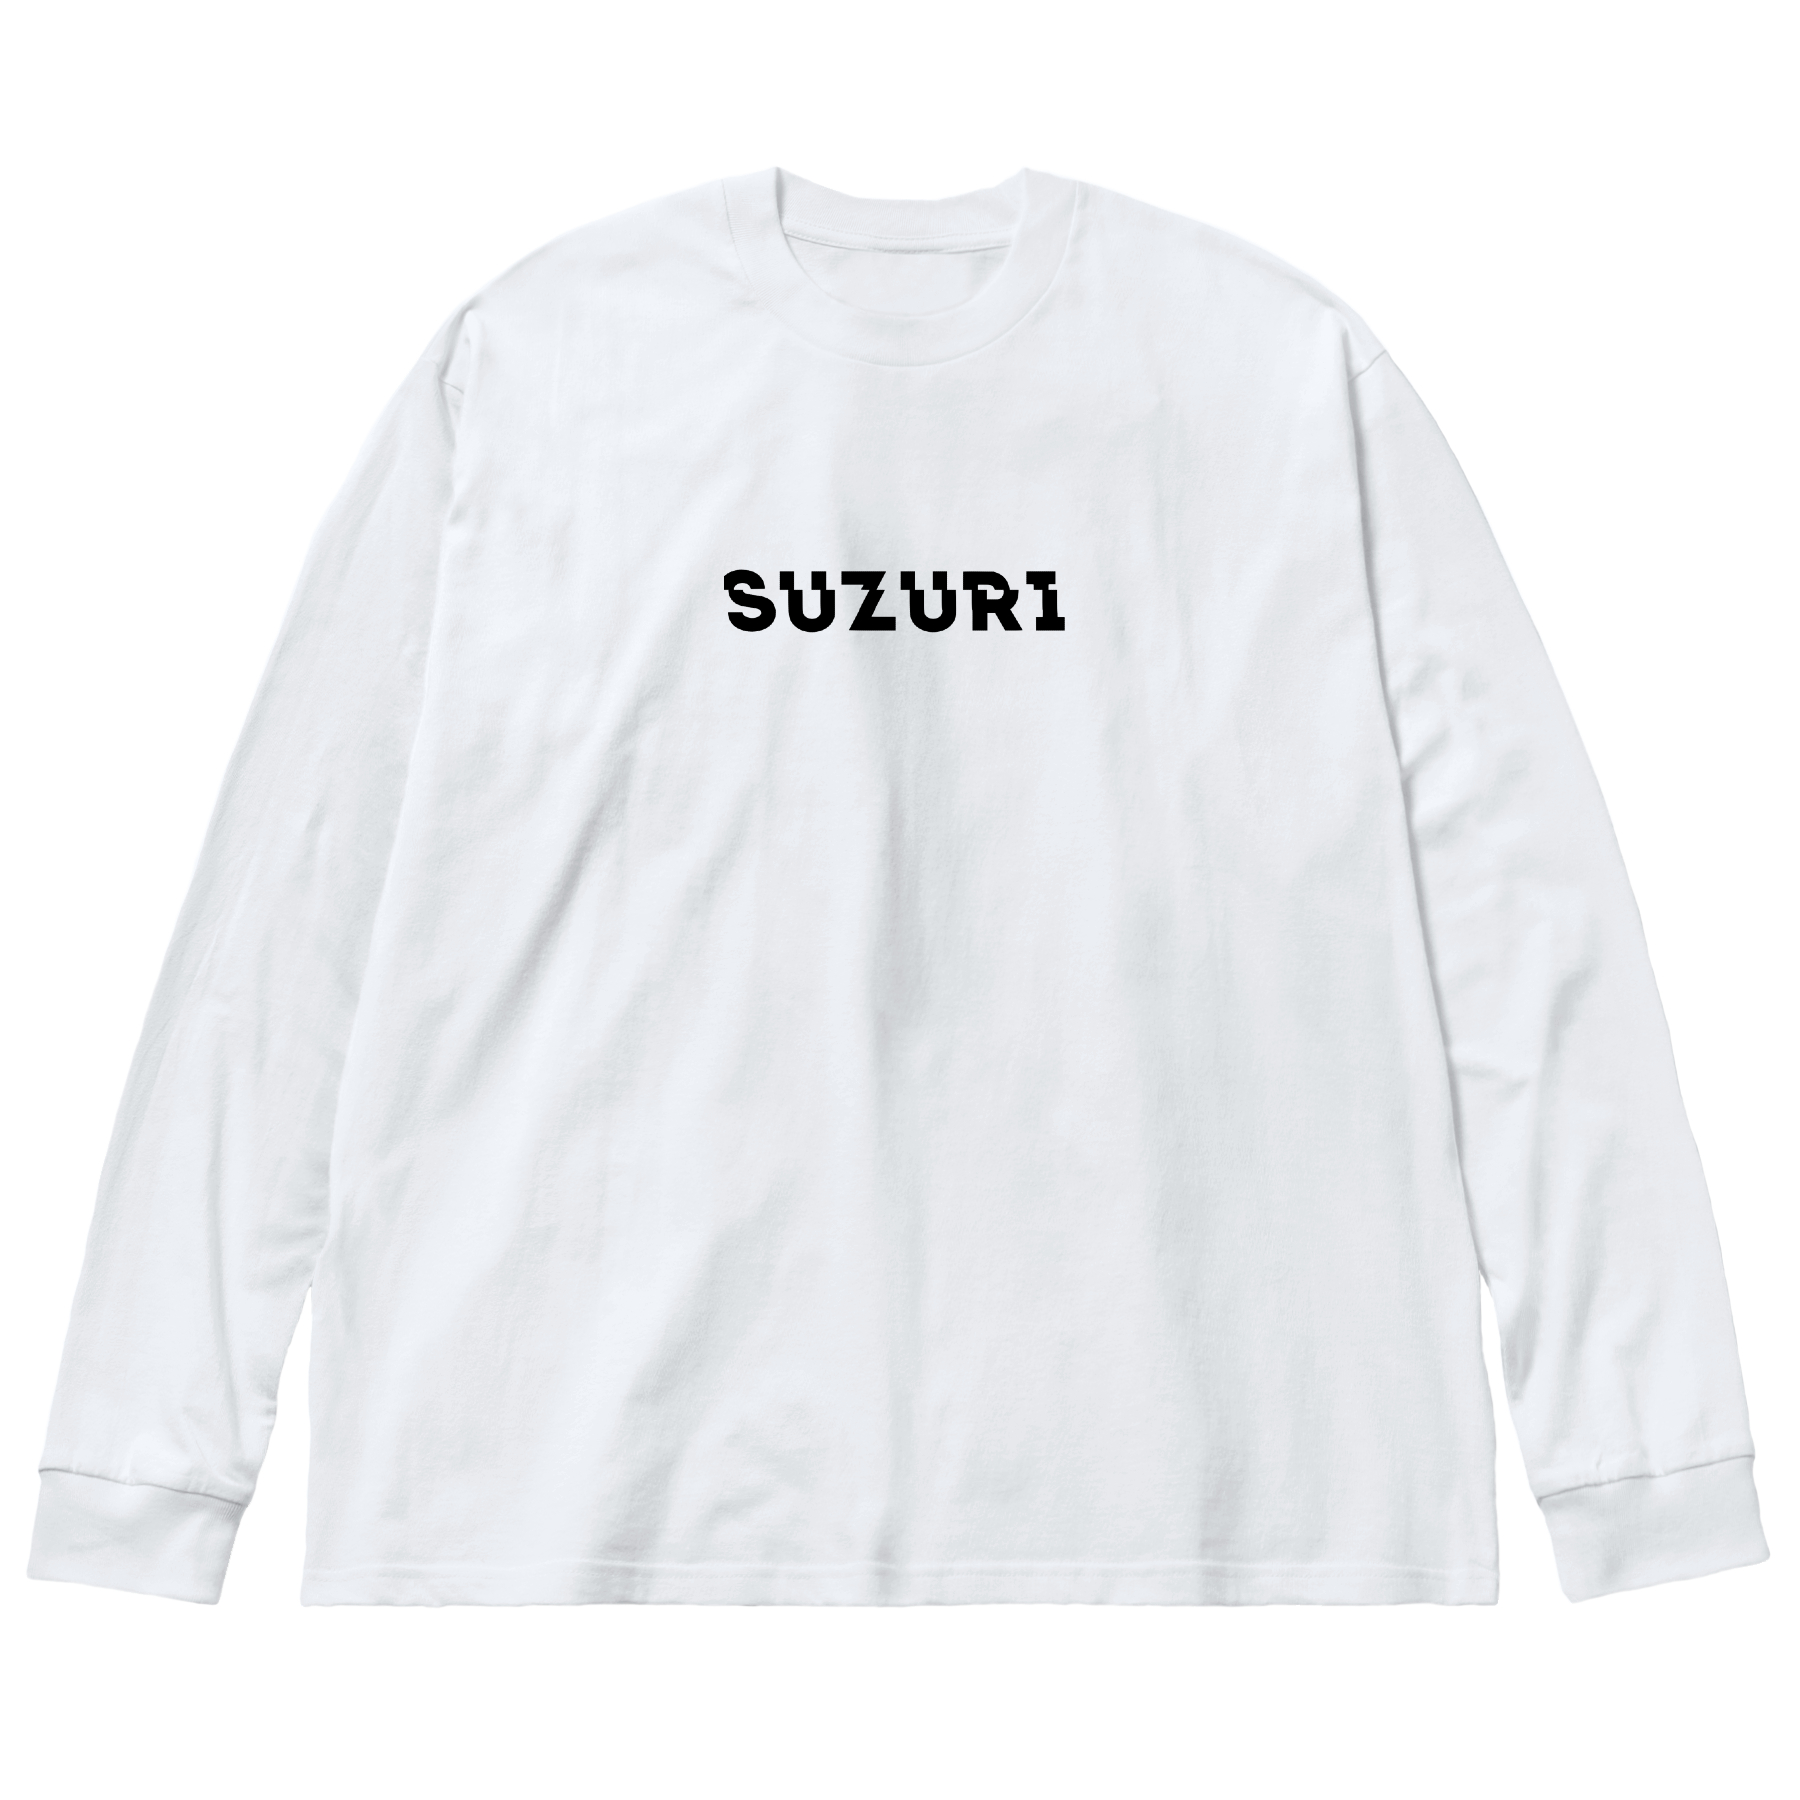 Big silhouette long sleeve T-shirts